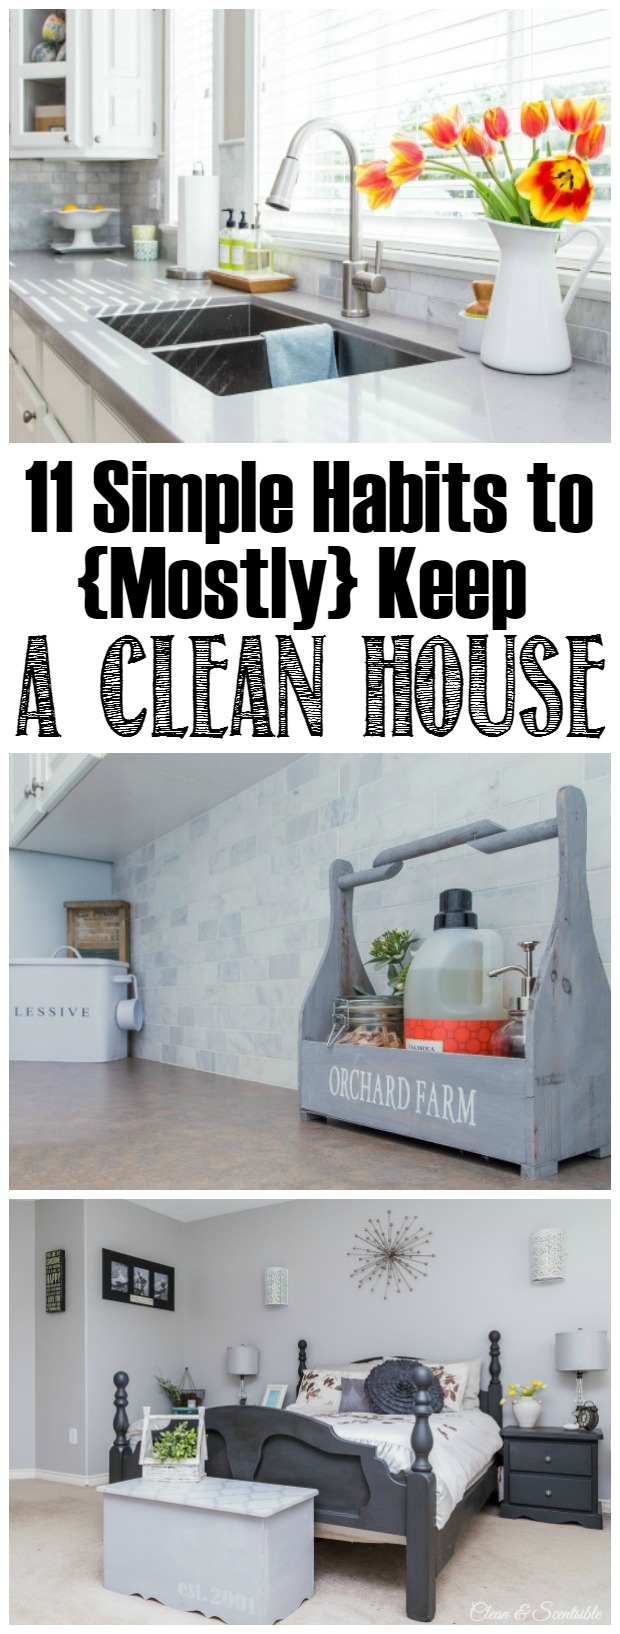 Easy To Follow Tips Keep Your Home Clean And Tidy On A Daily Basis